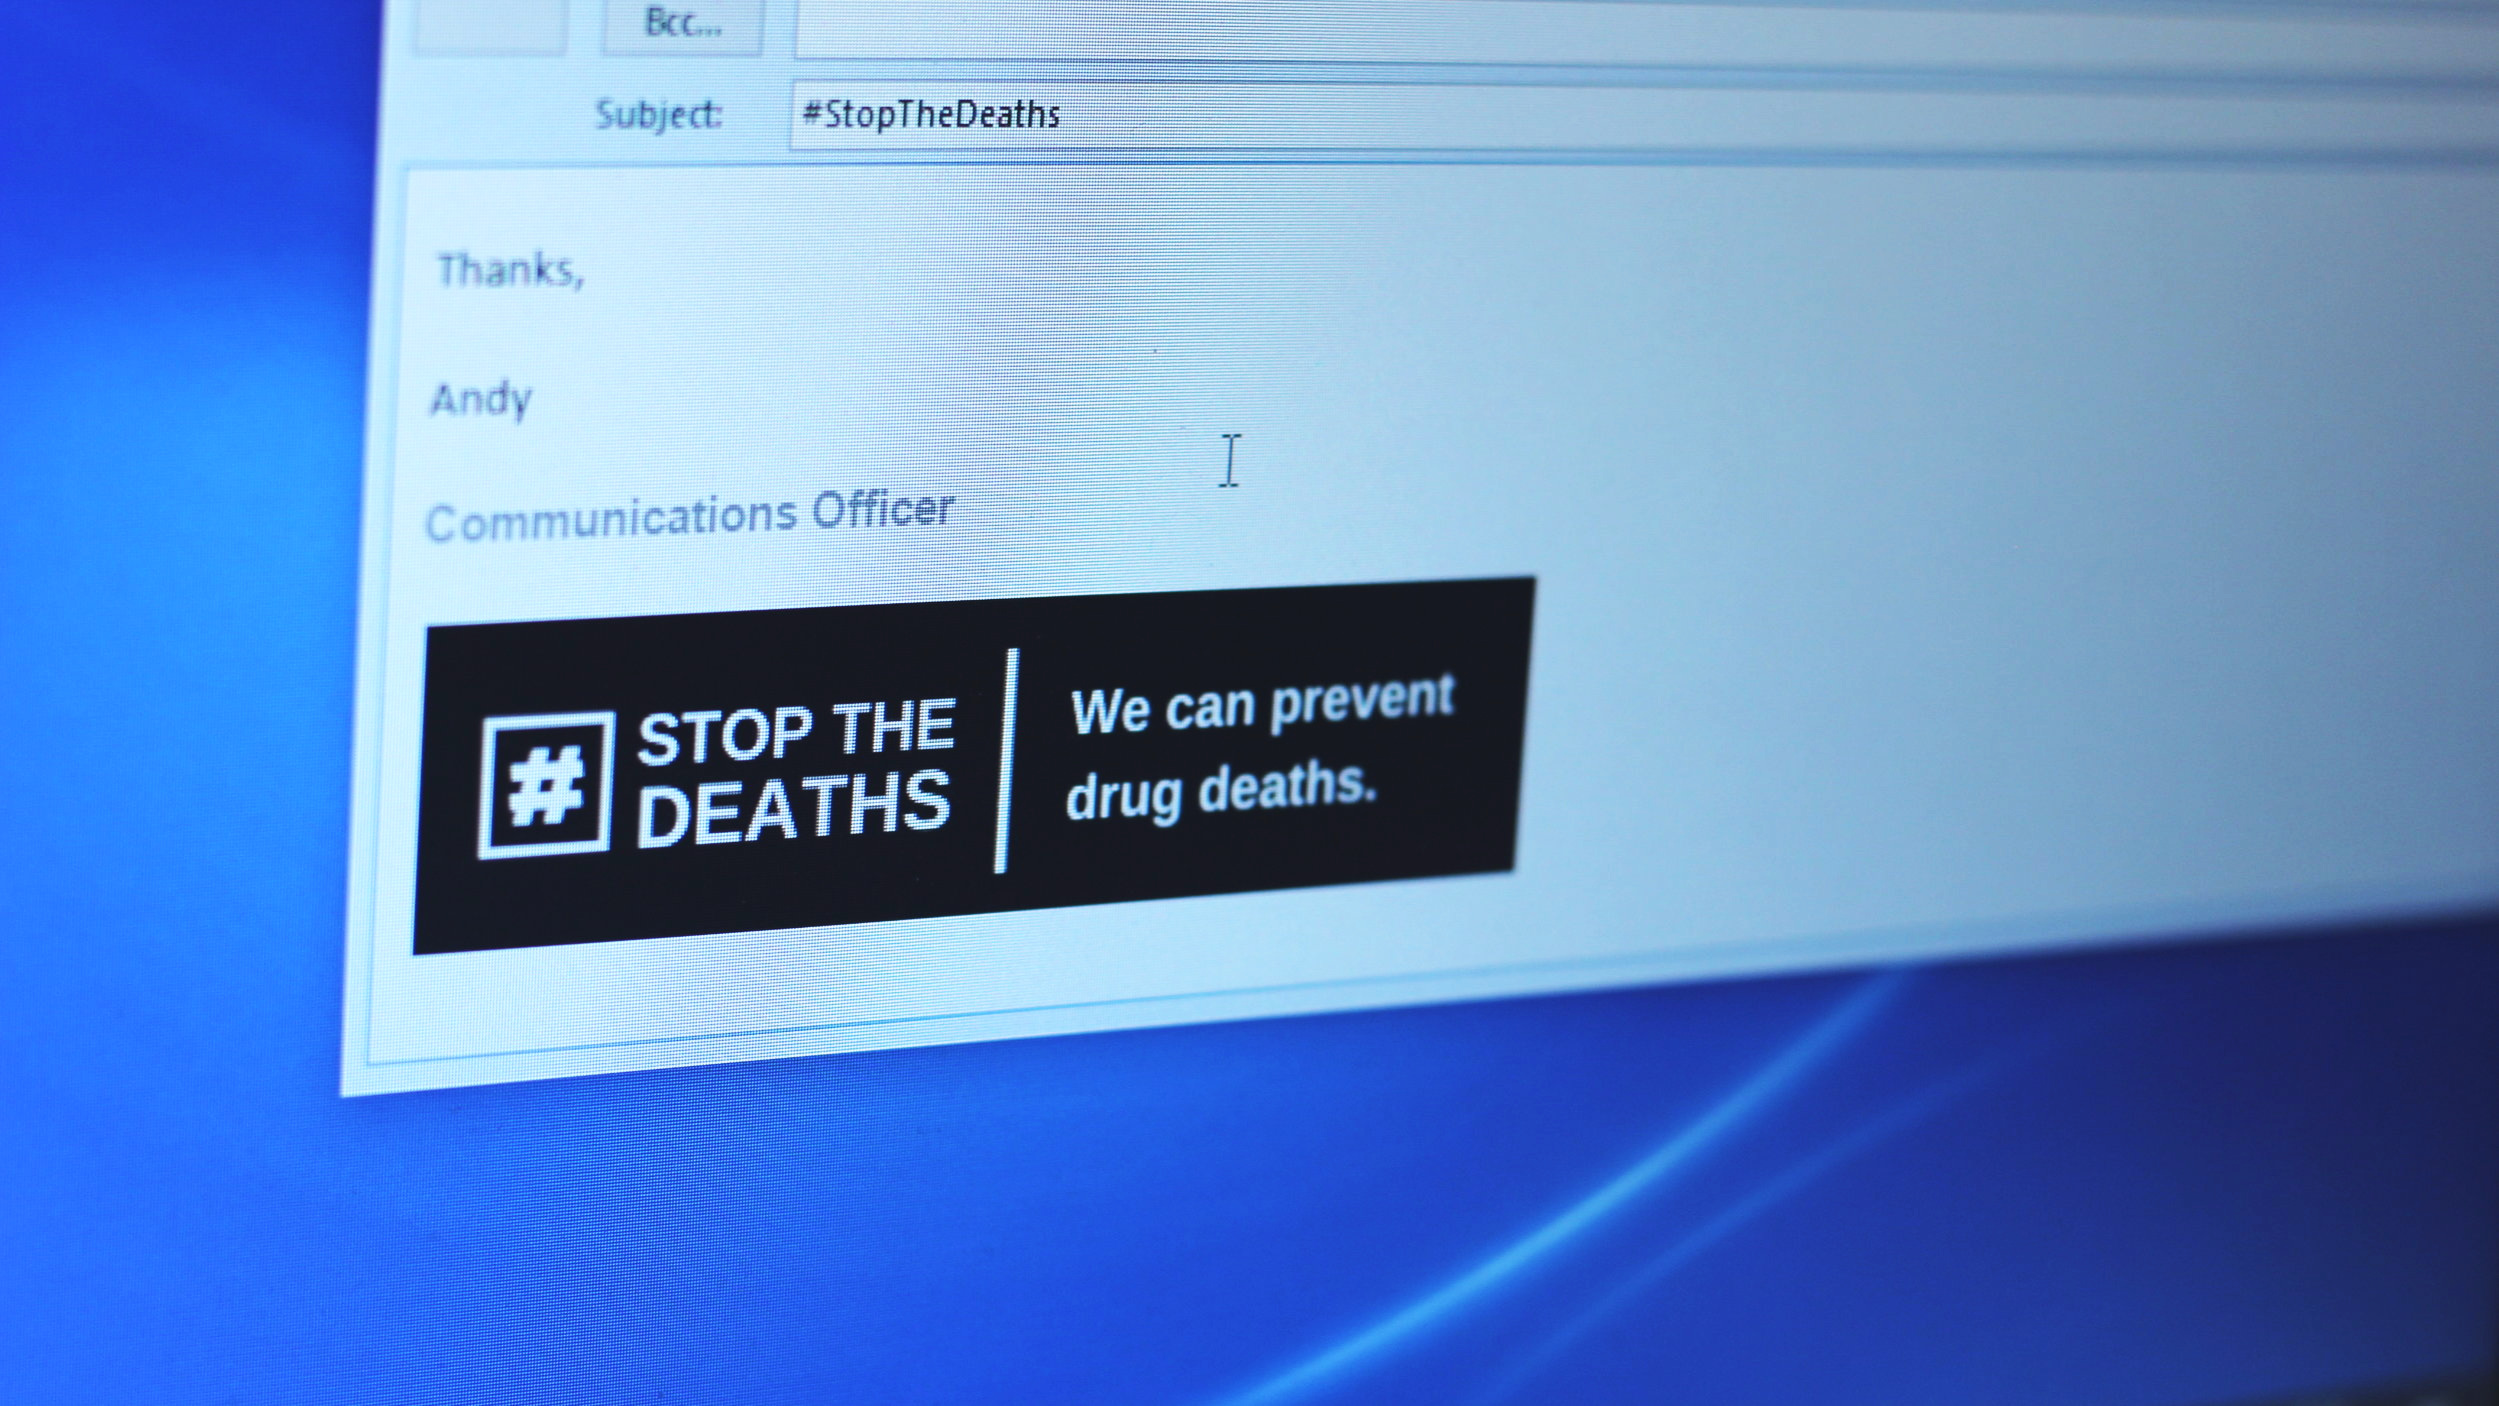 Add a logo to your email signature - Upload a #StopTheDeaths logo to your email signature and share the message one email at a time.